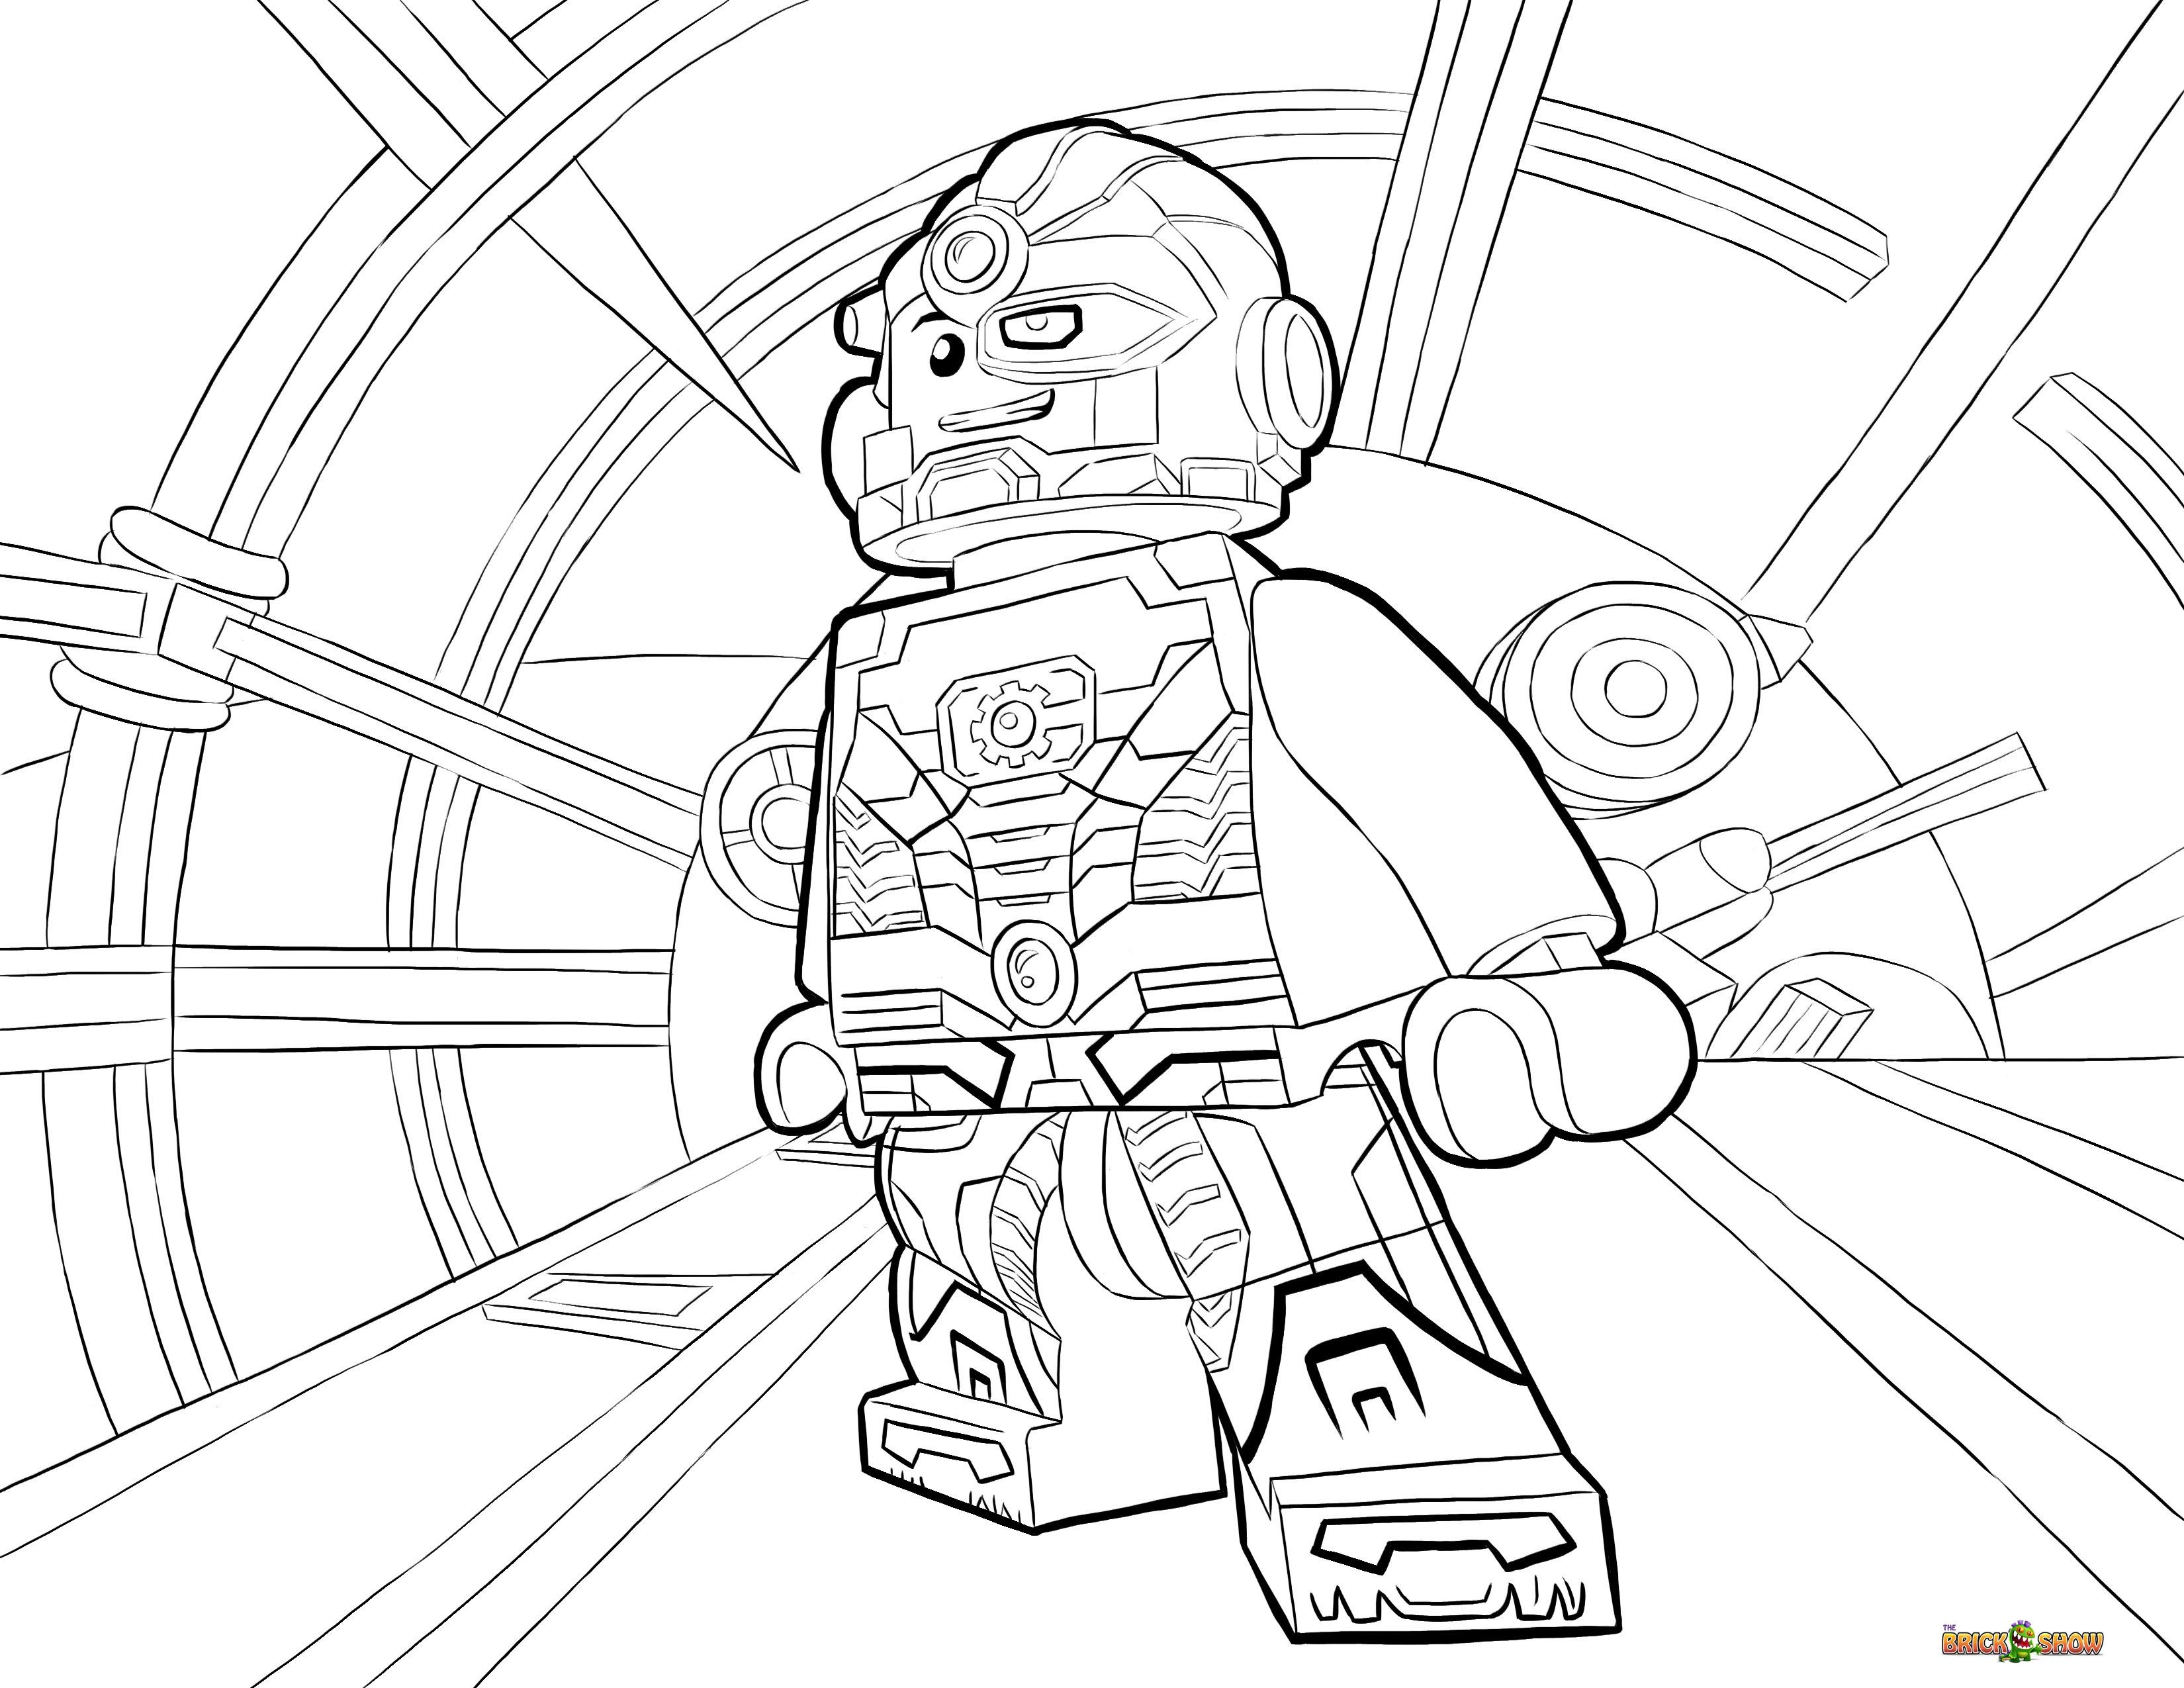 45+ Lego cyborg coloring pages information